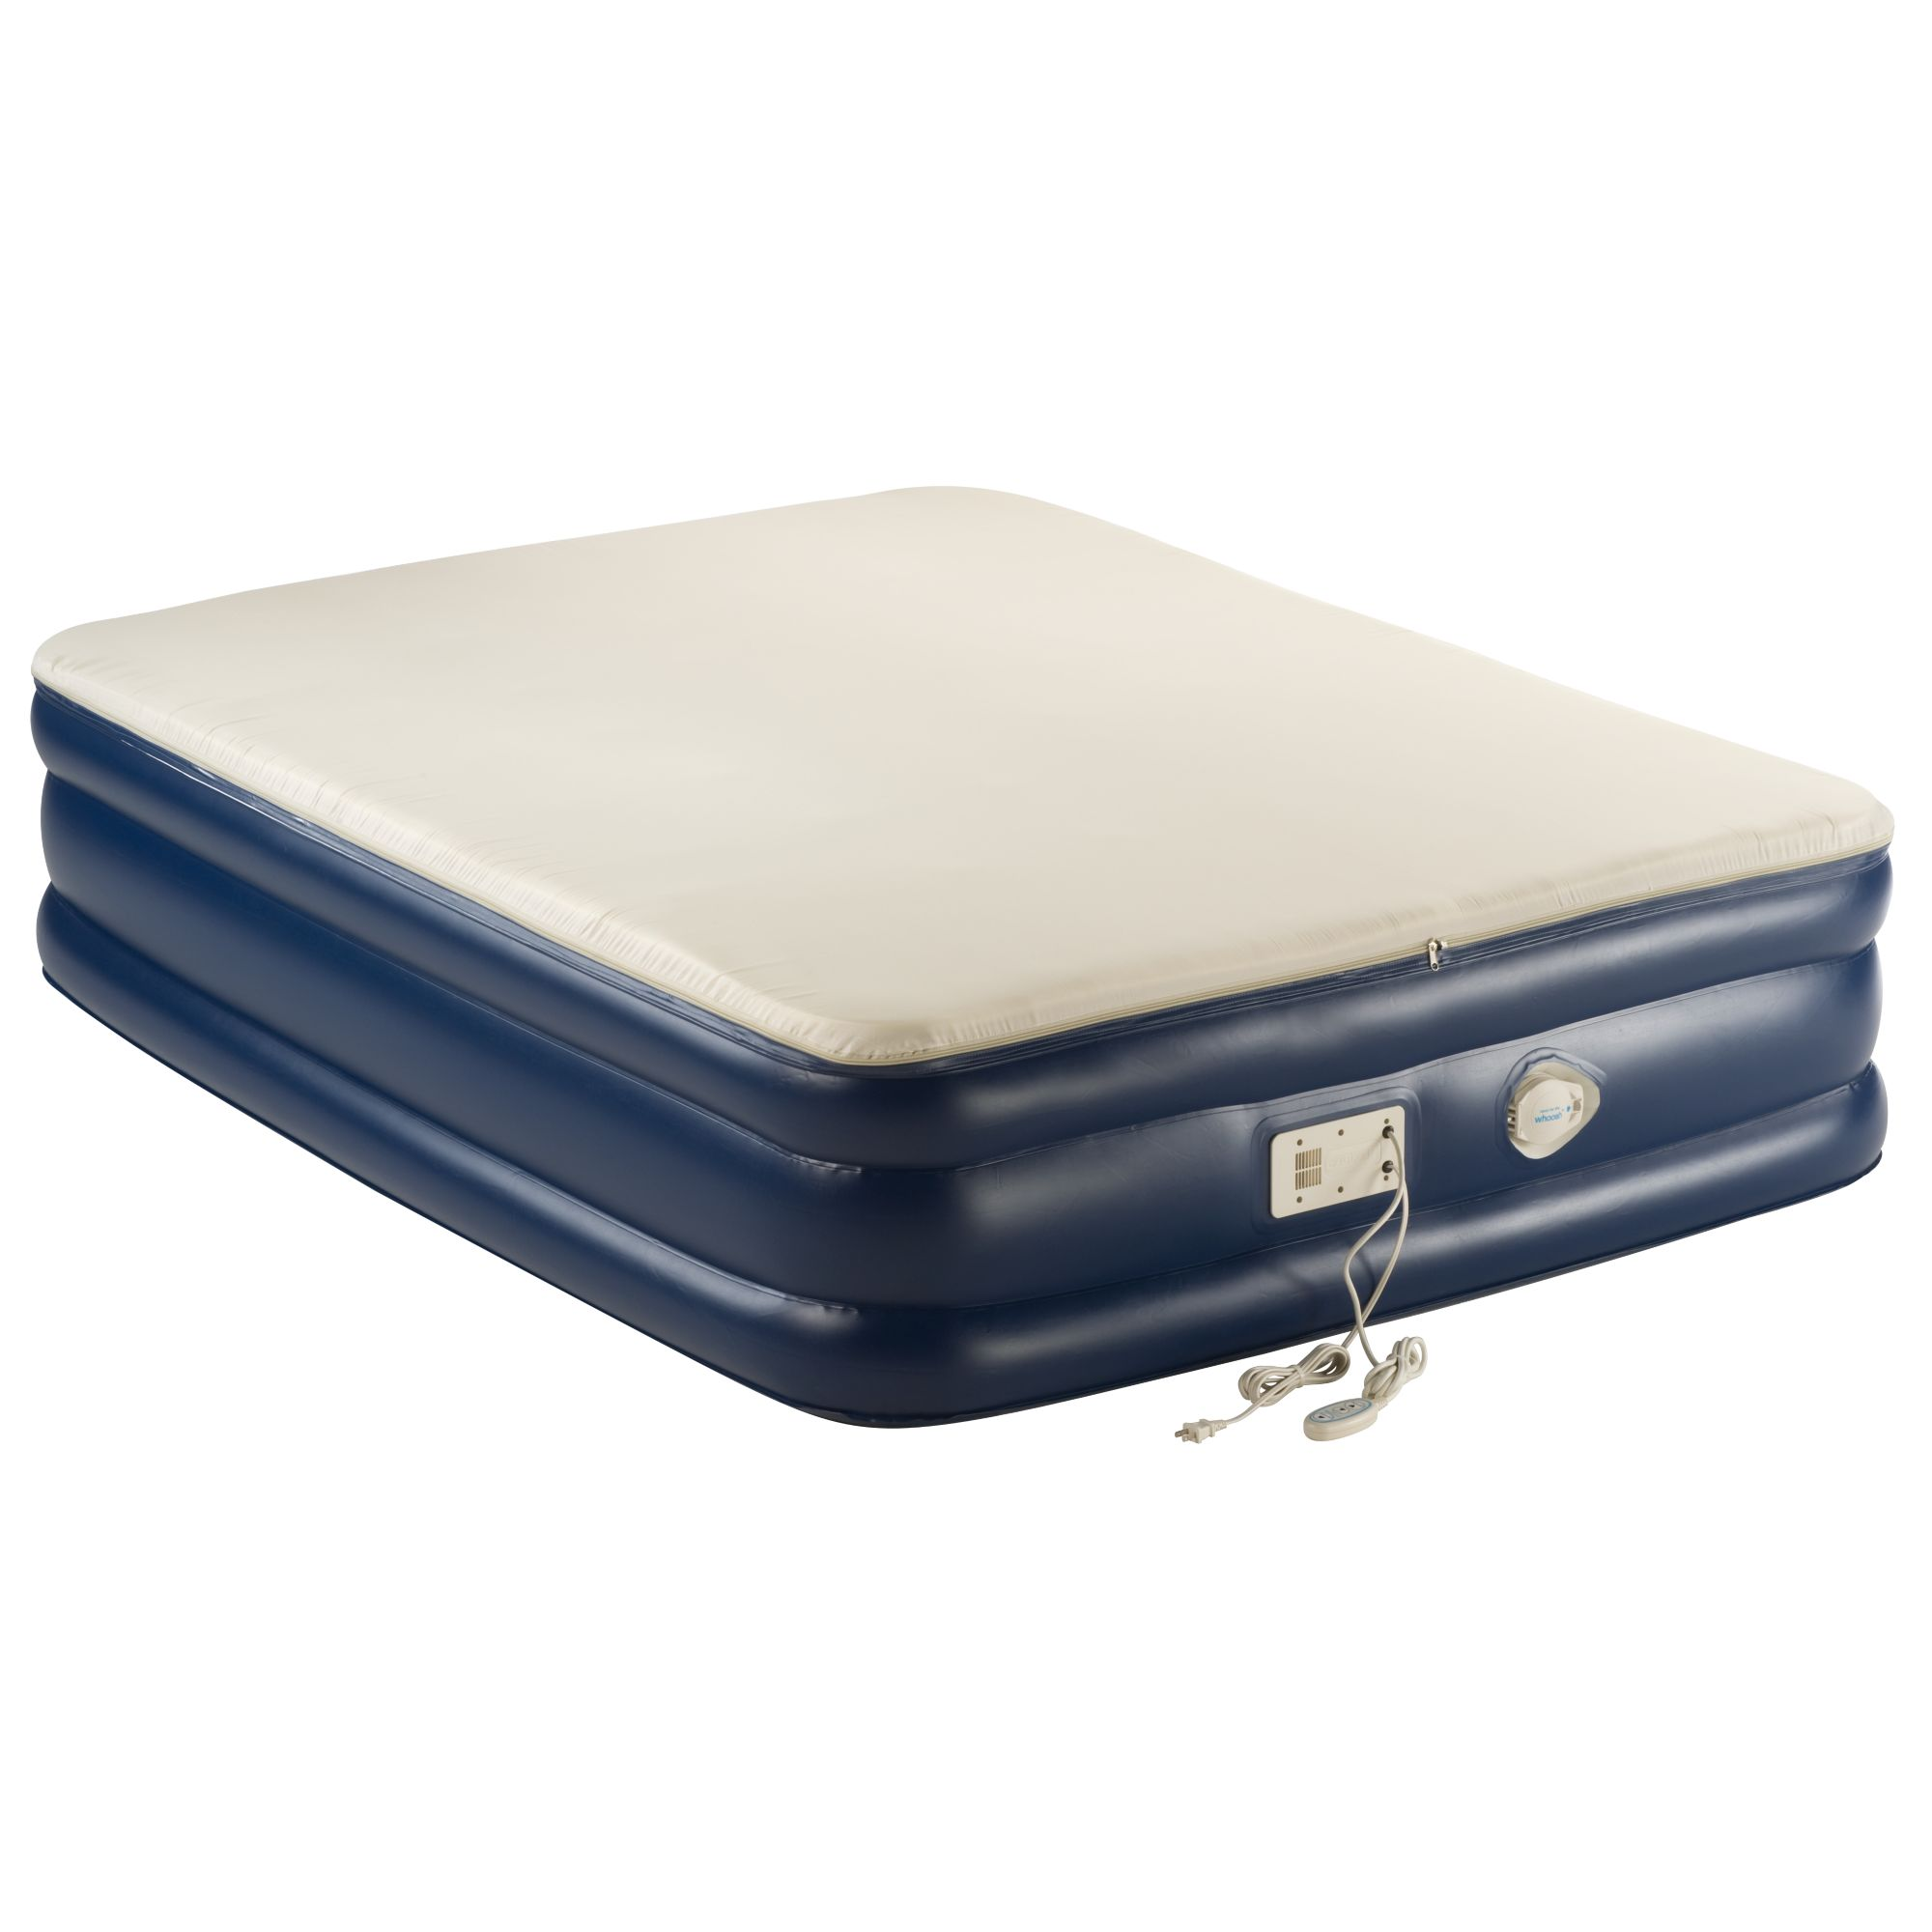 Air bed for camping - Premier Air Bed With Memory Foam Queen